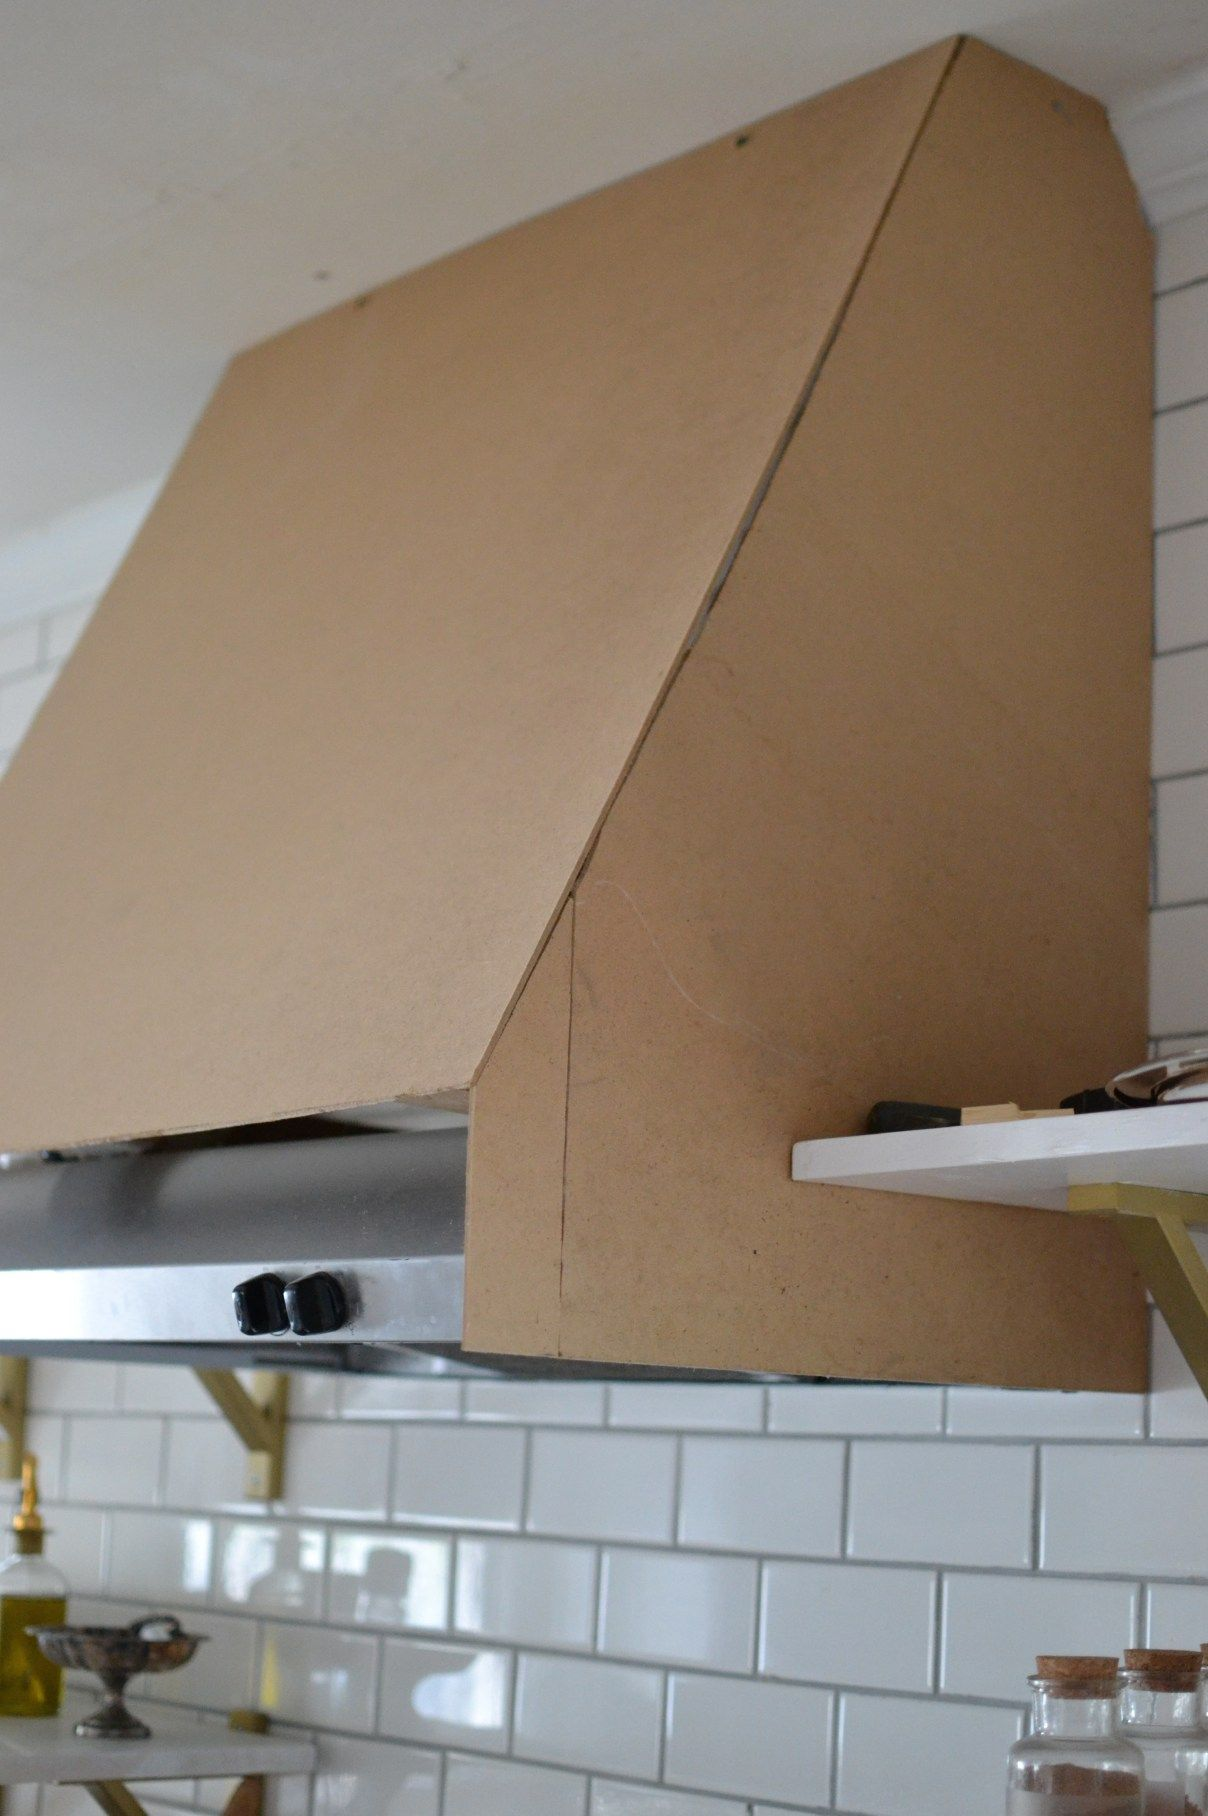 kitchen exhaust vent cover memory foam rugs diy range hood with shelving